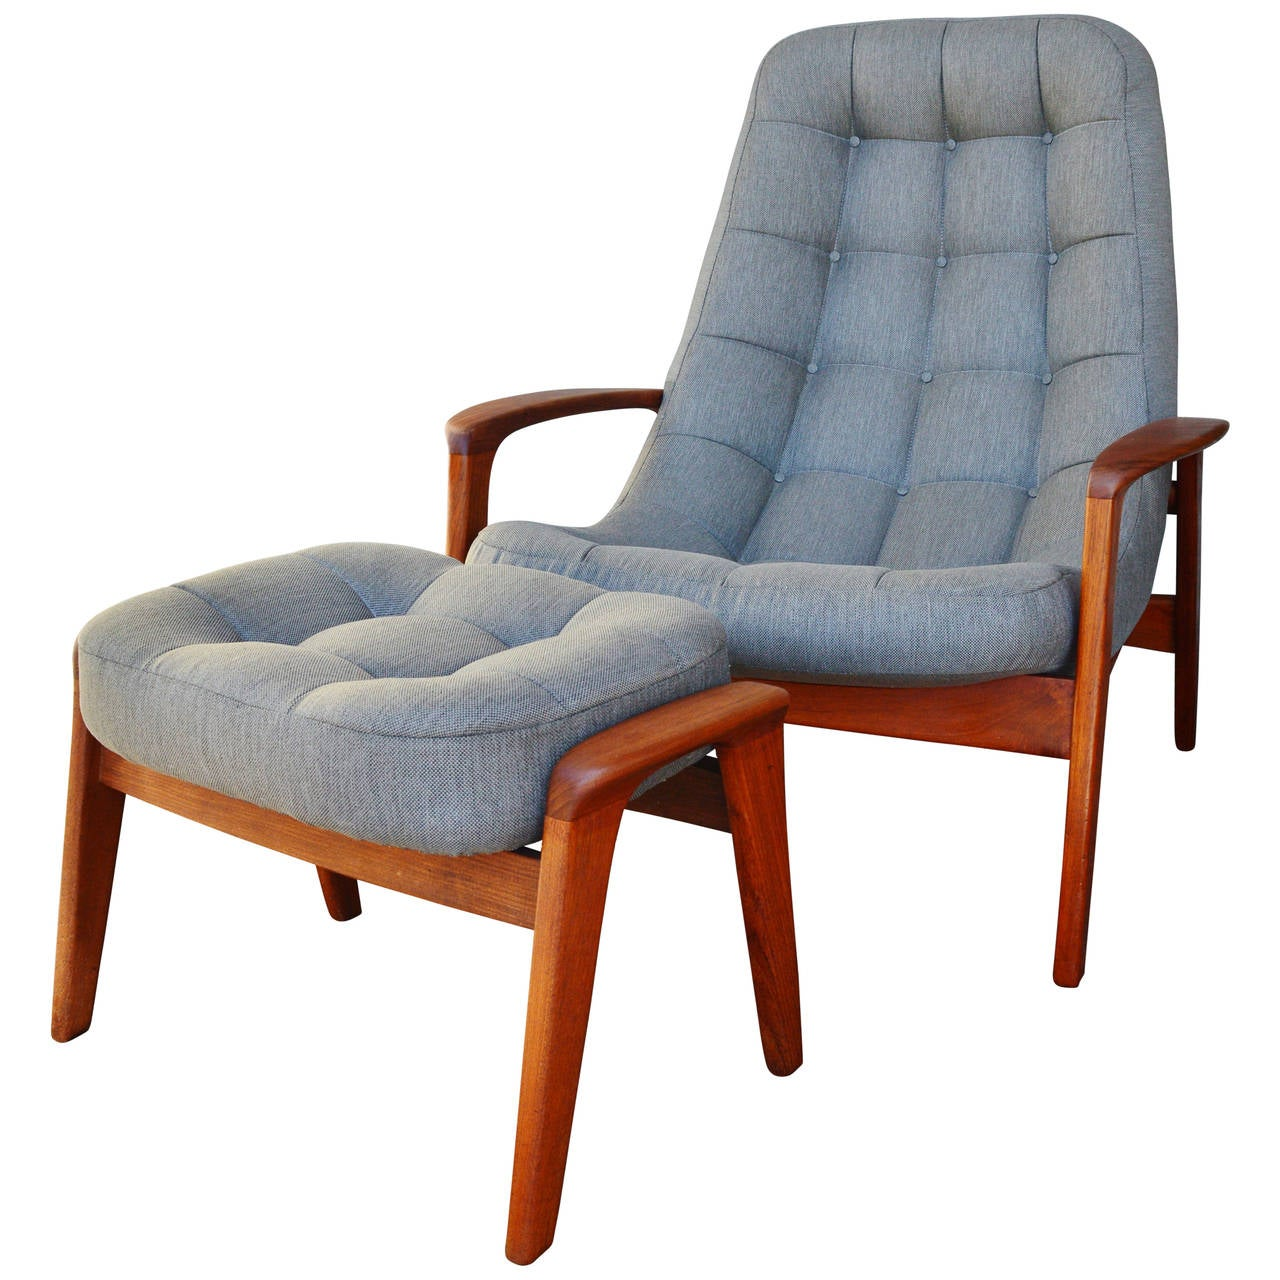 Danish Modern Style Teak Button Tufted Lounge Chair and Ottoman at 1stdibs